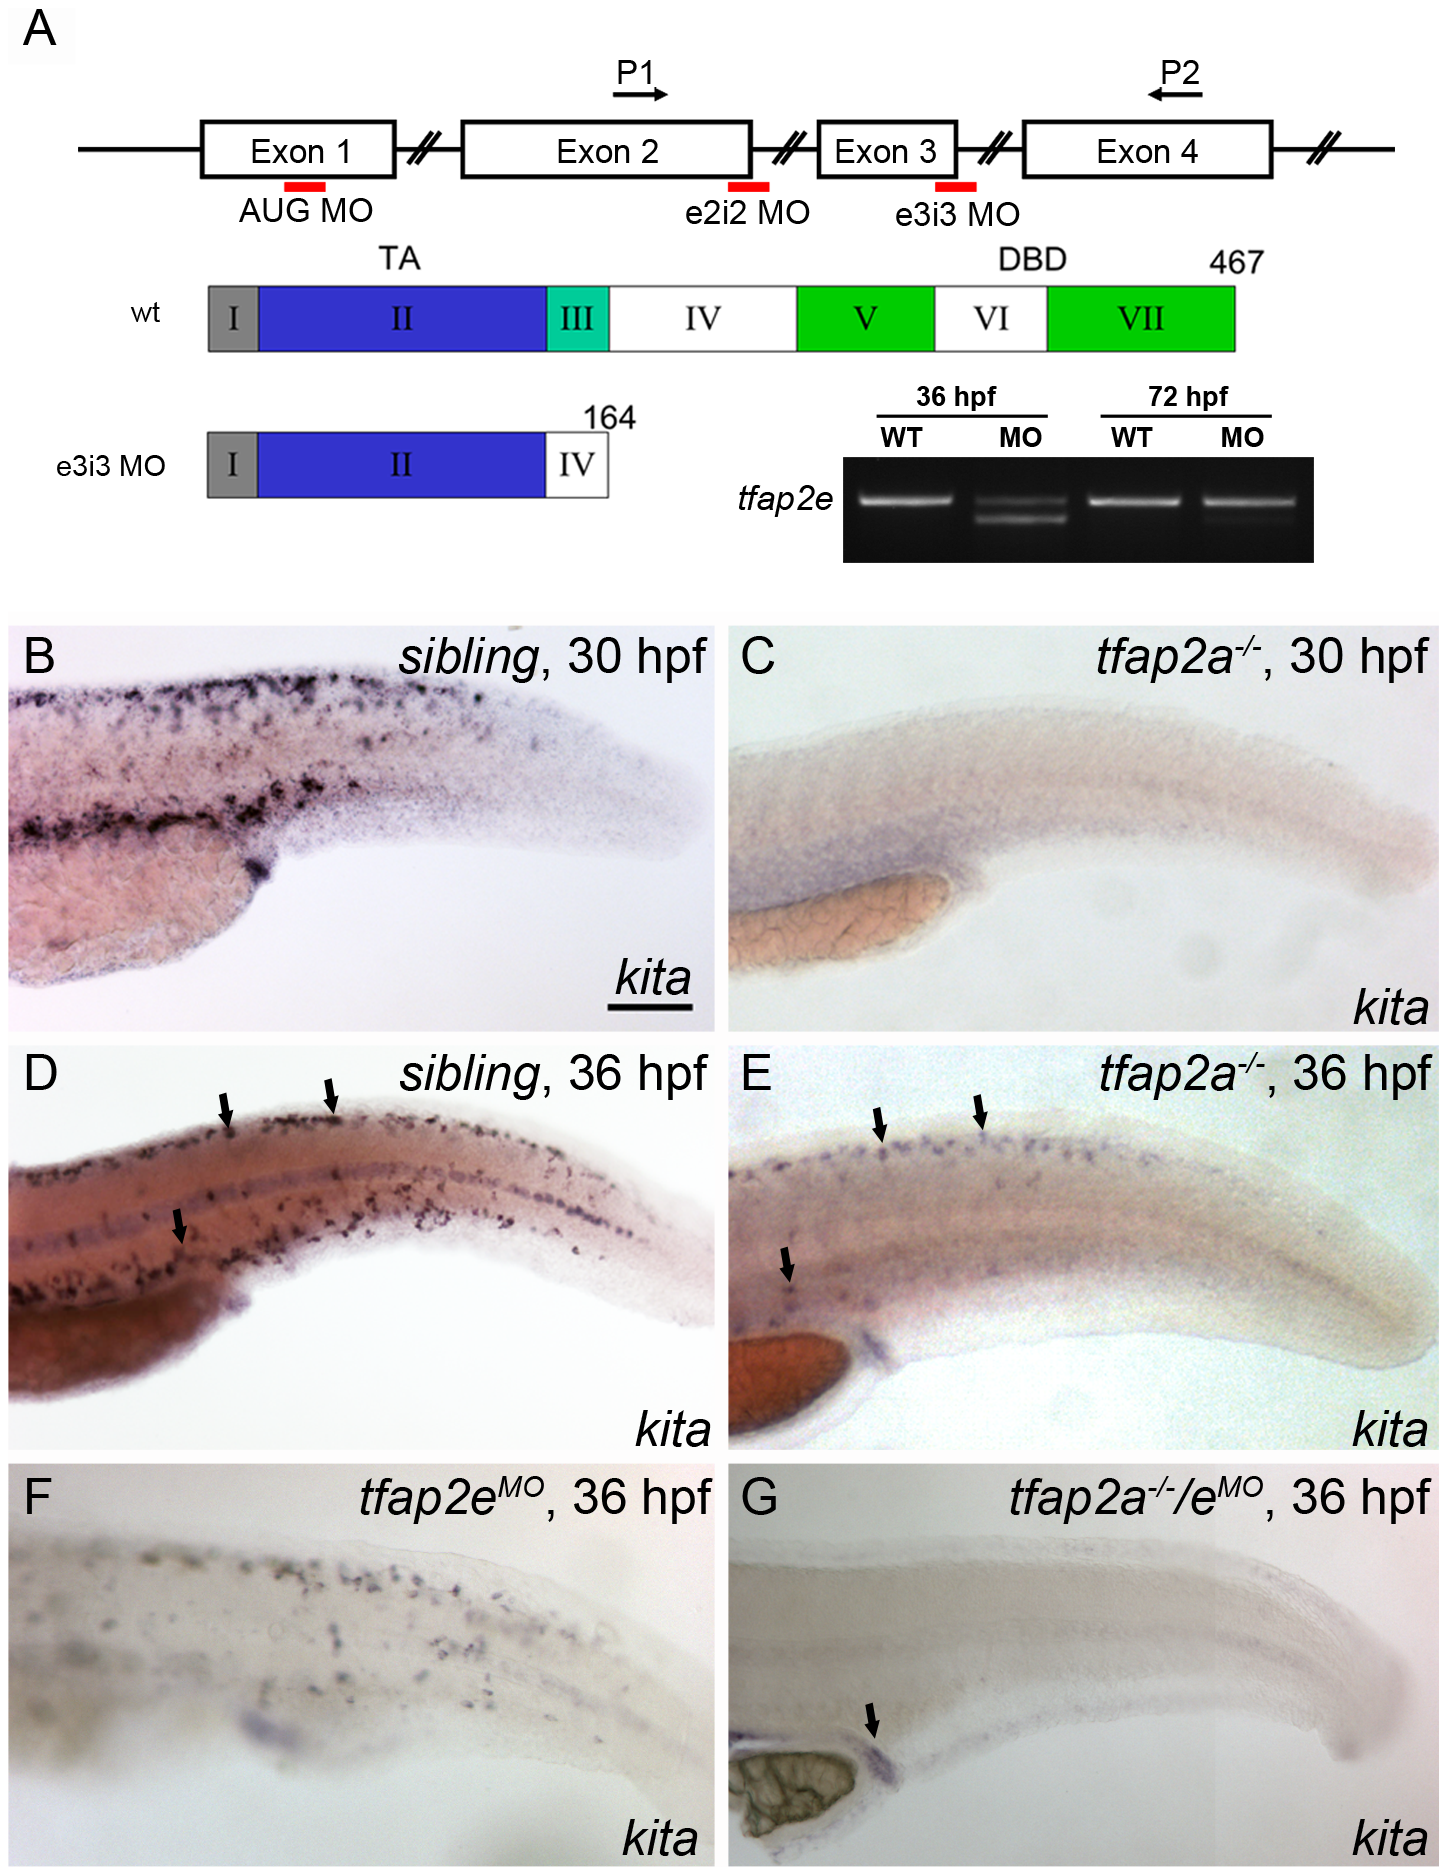 Expression of <i>kita</i> in melanophores is dependent on Tfap2a and Tfap2e.